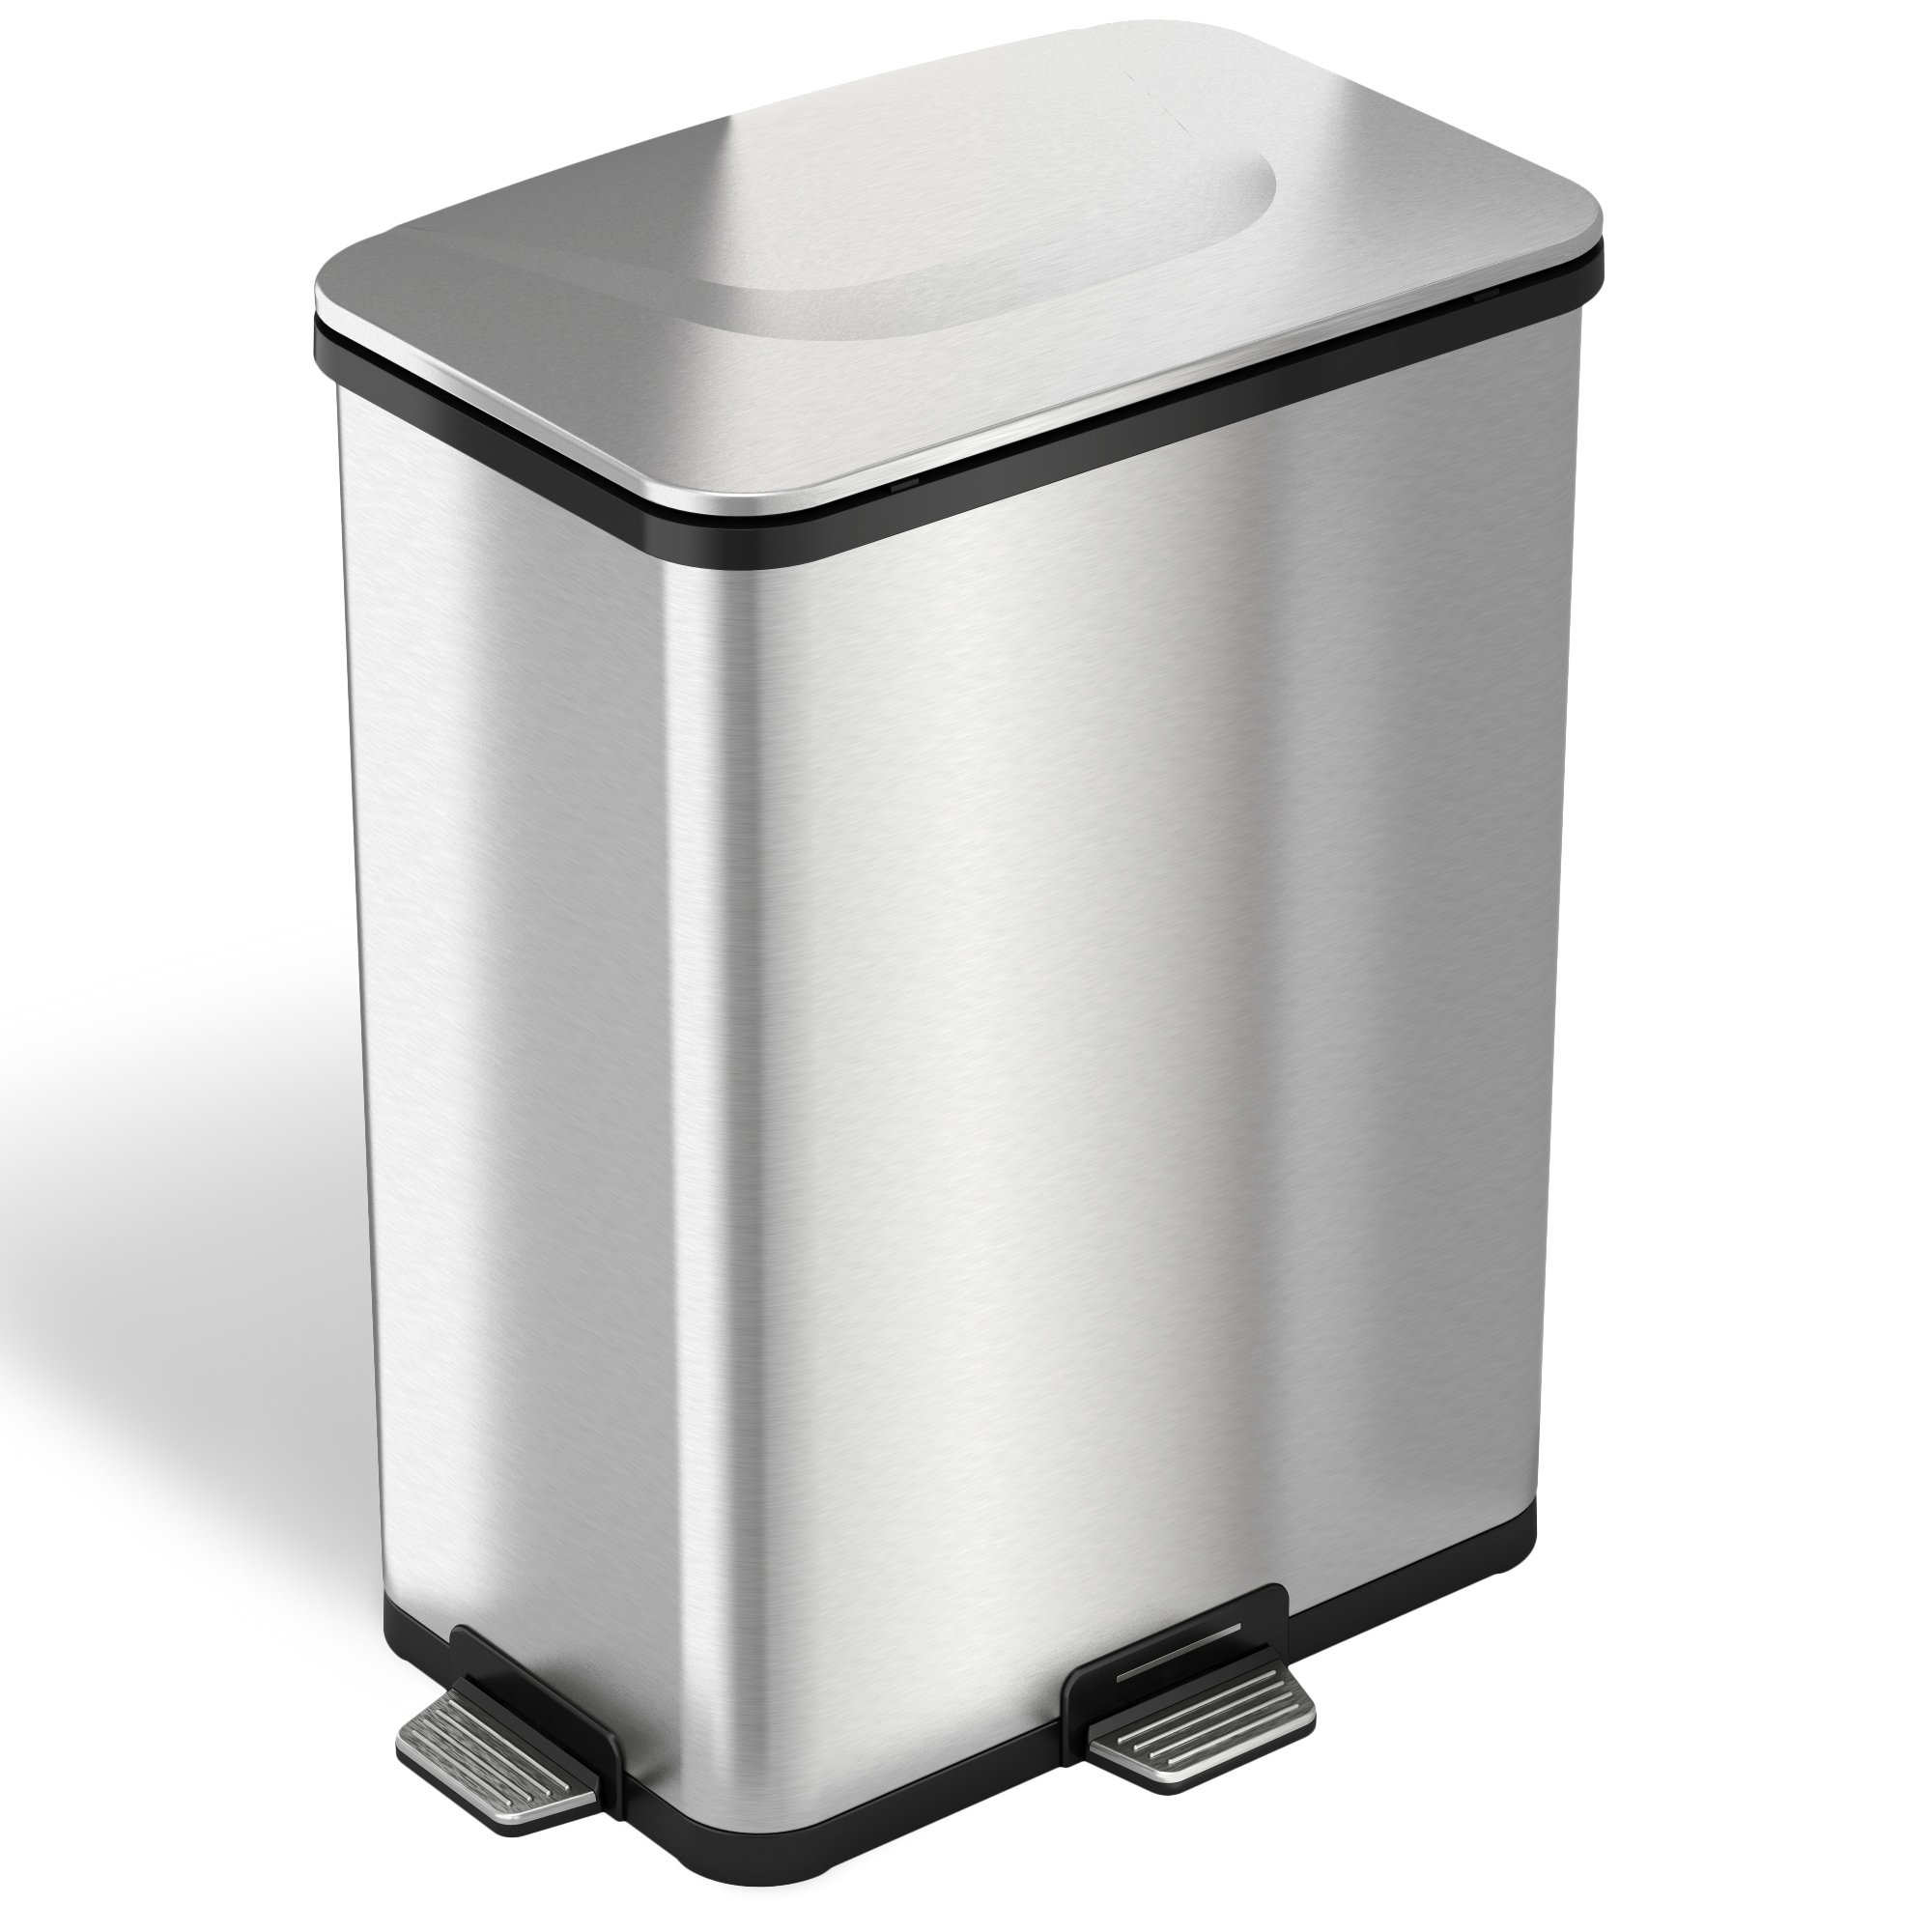 iTouchless AutoStep PRO Automatic Step Trash Can with Odor Control System, Stainless Steel (Base Model – No AC Adapter), 13 Gallon